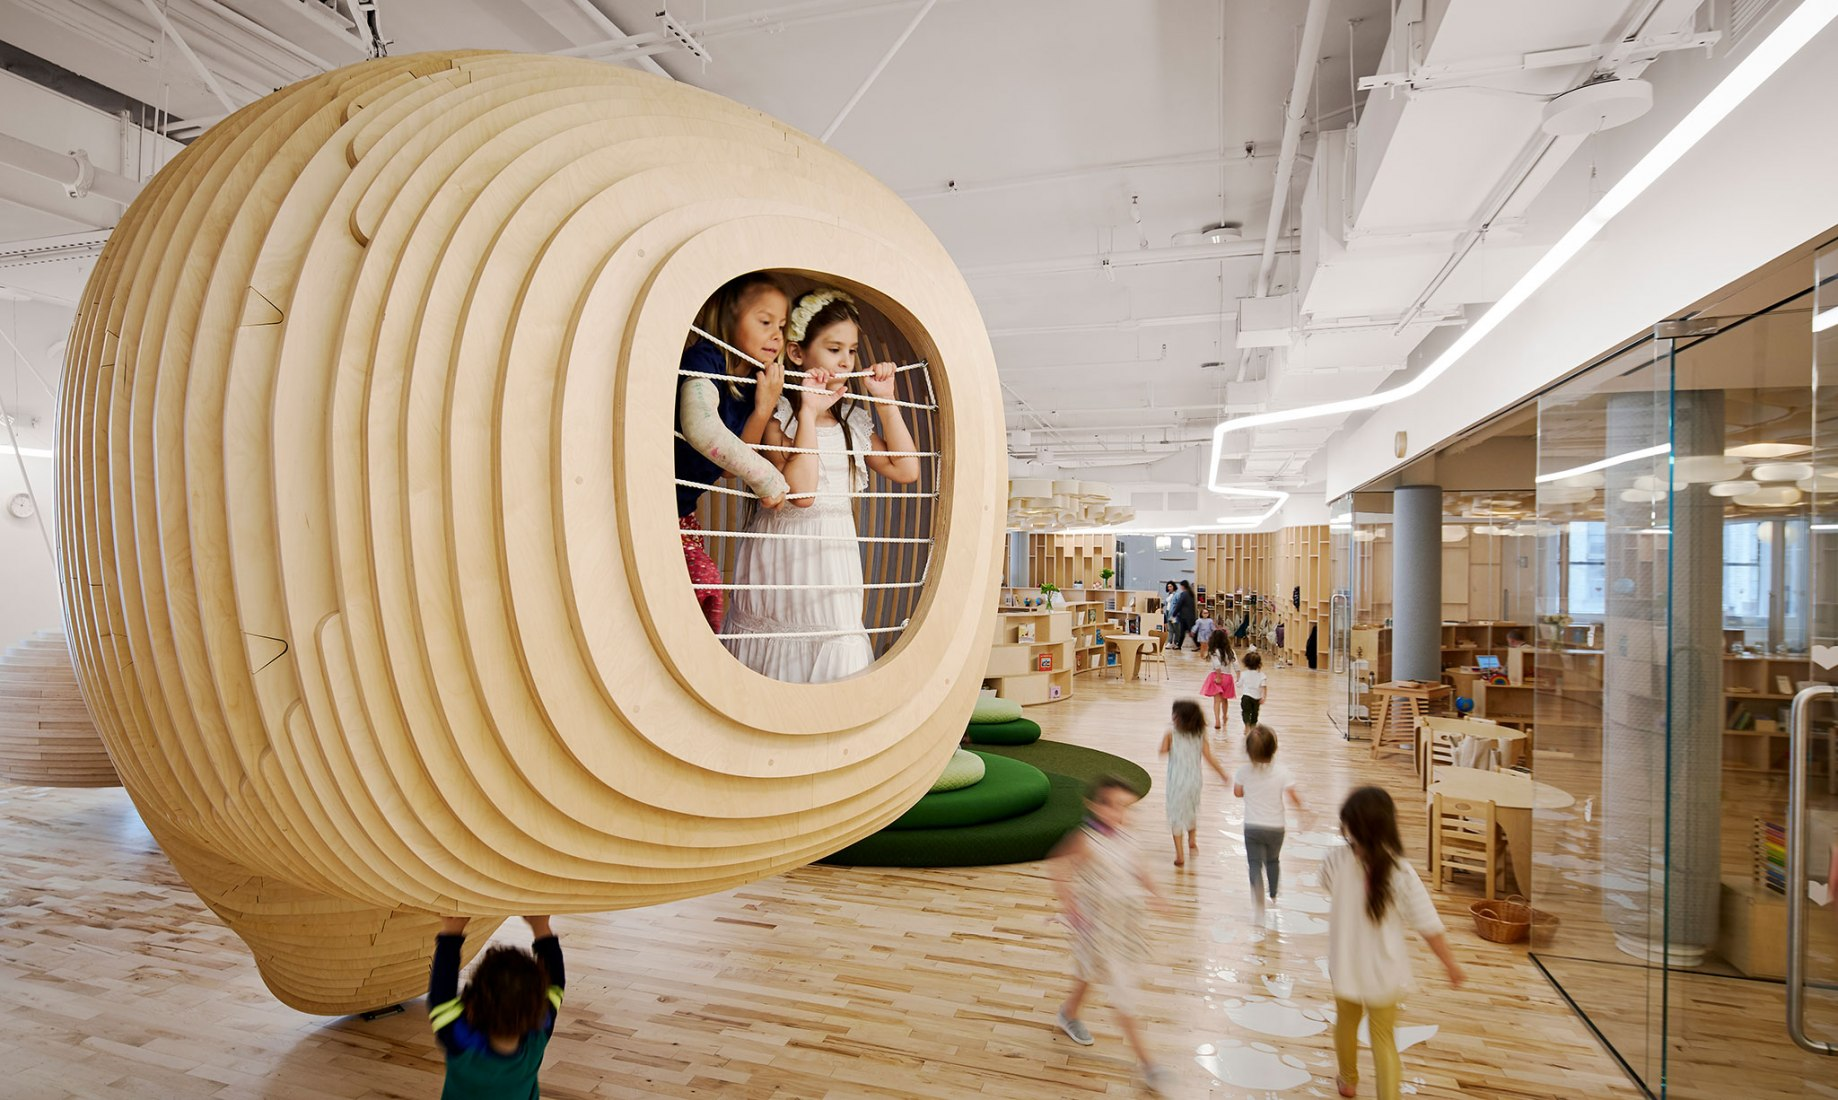 BIG reimagines education with new School designed for Wegrow. Photograph by Dave Burk